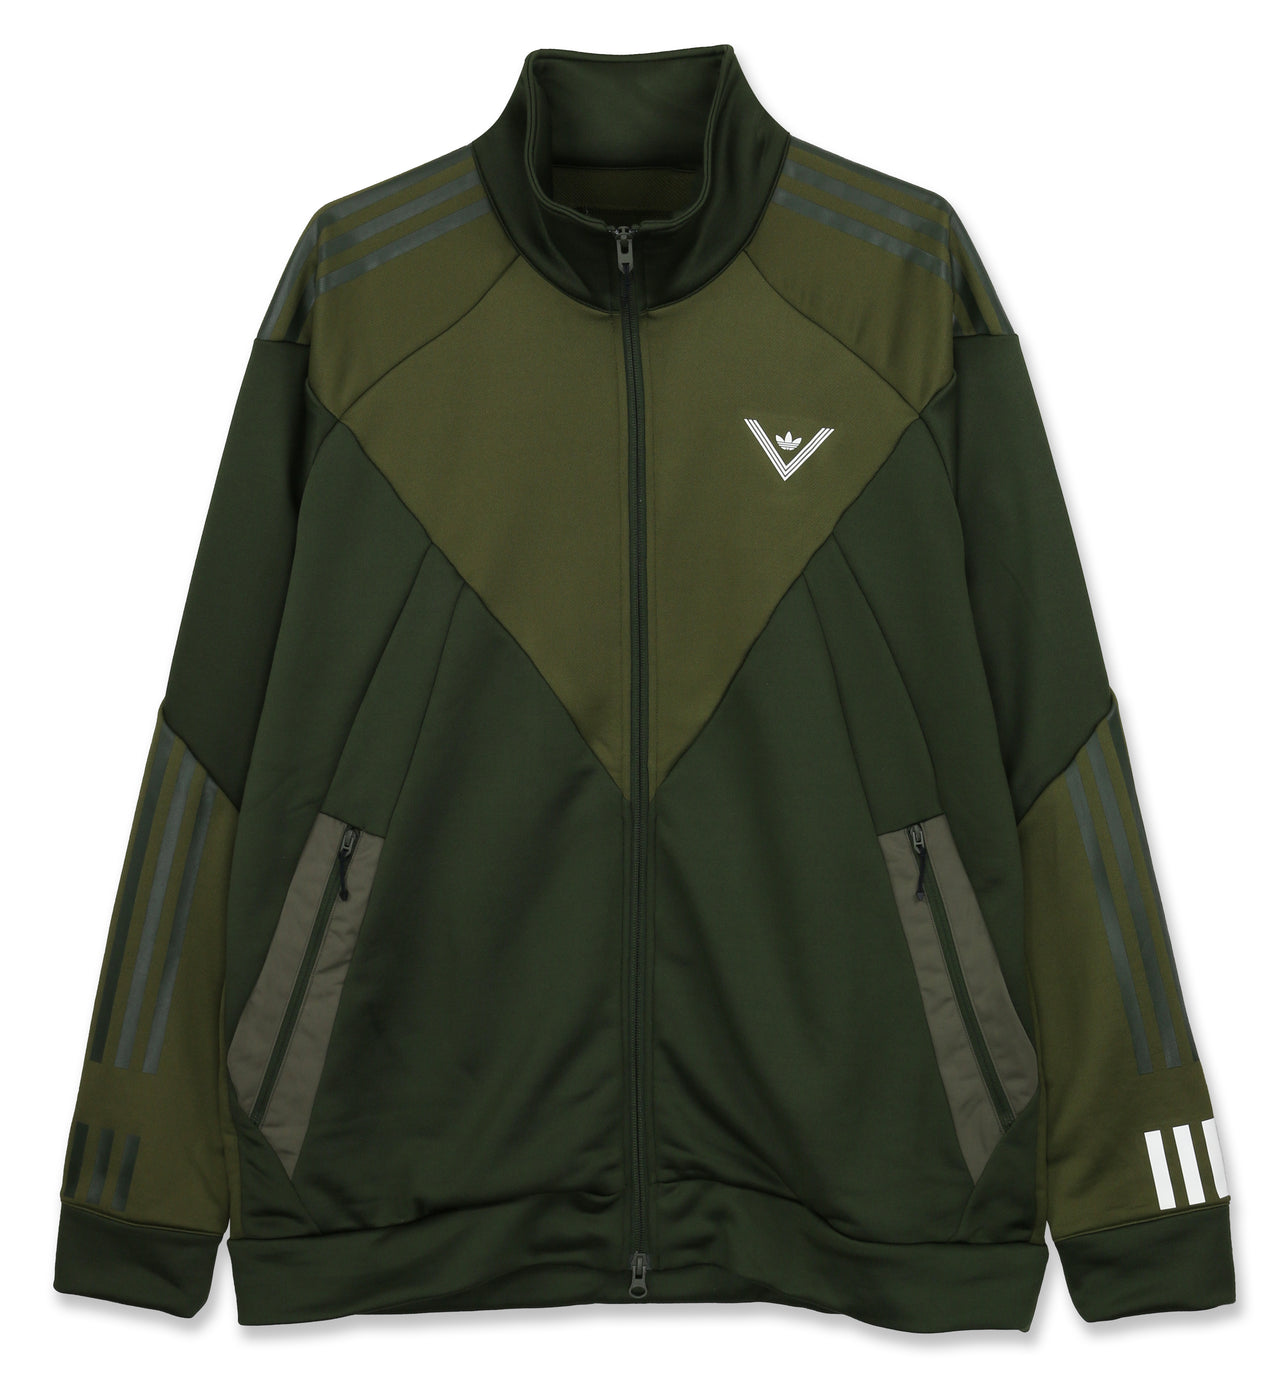 Adidas Track Top x White Mountaineering